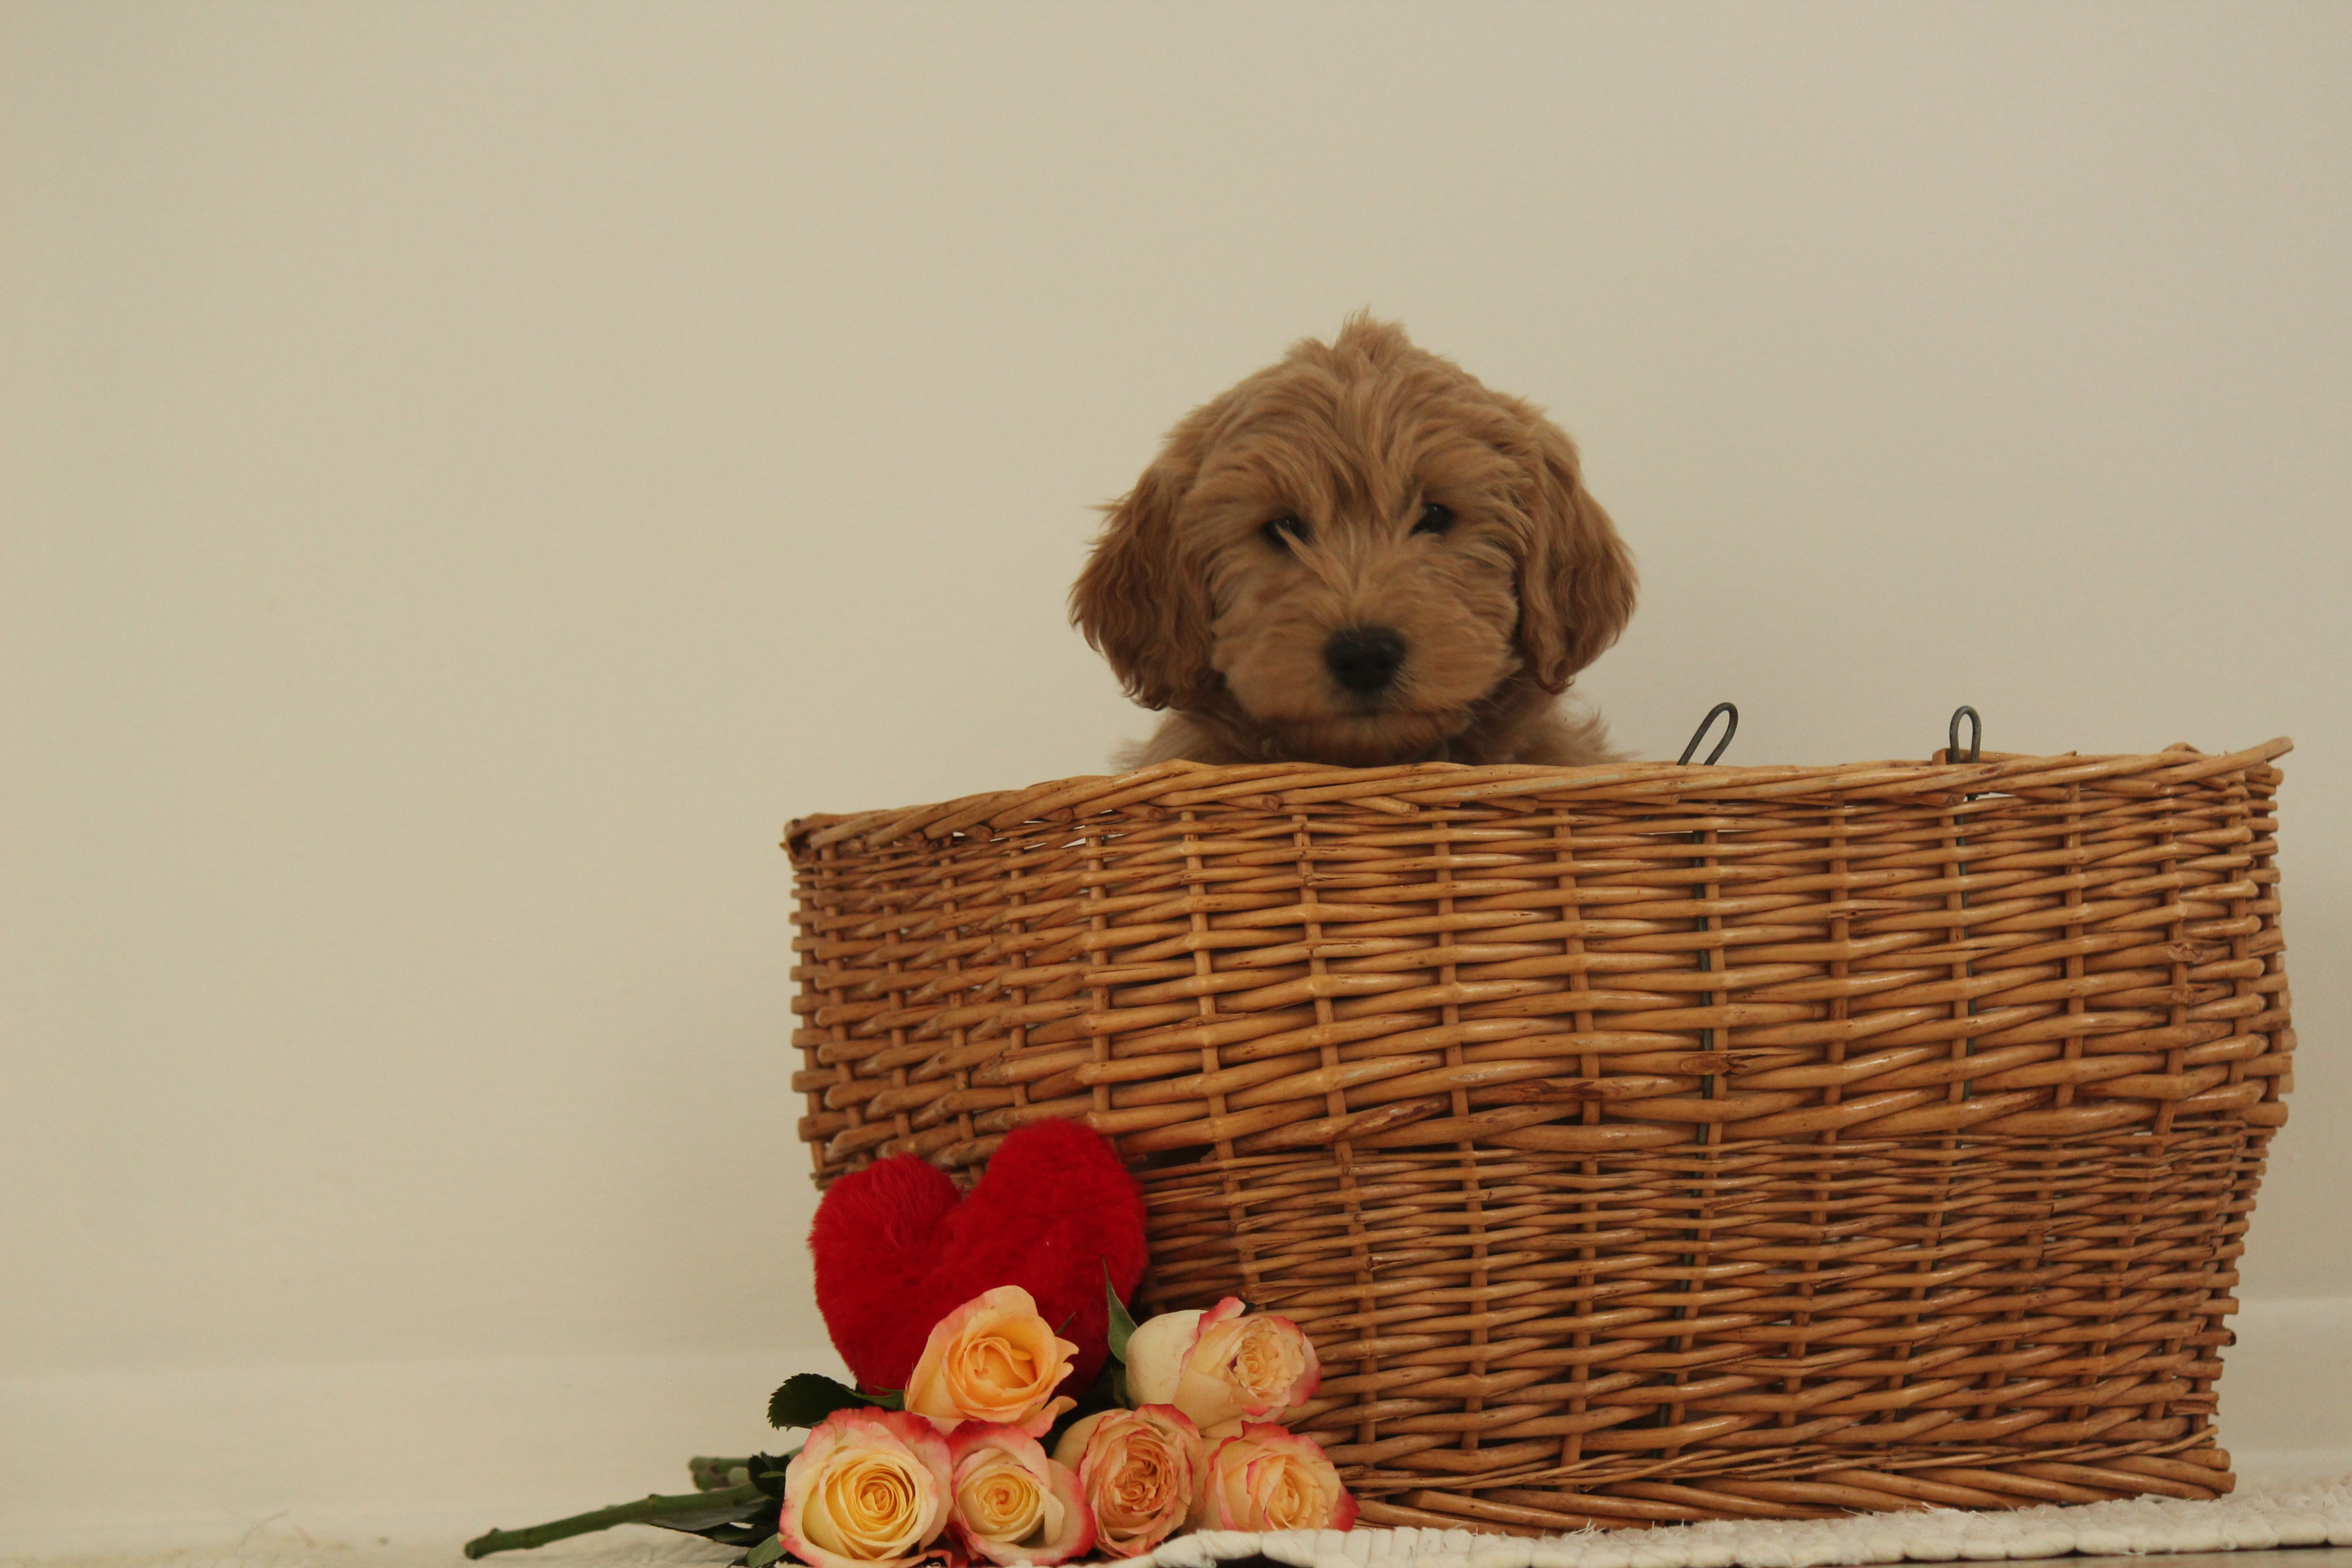 Mini Goldendoodle Puppies For Sale Greenfield Puppies Goldendoodle Puppy For Sale Goldendoodle Puppy Mini Goldendoodle Puppies